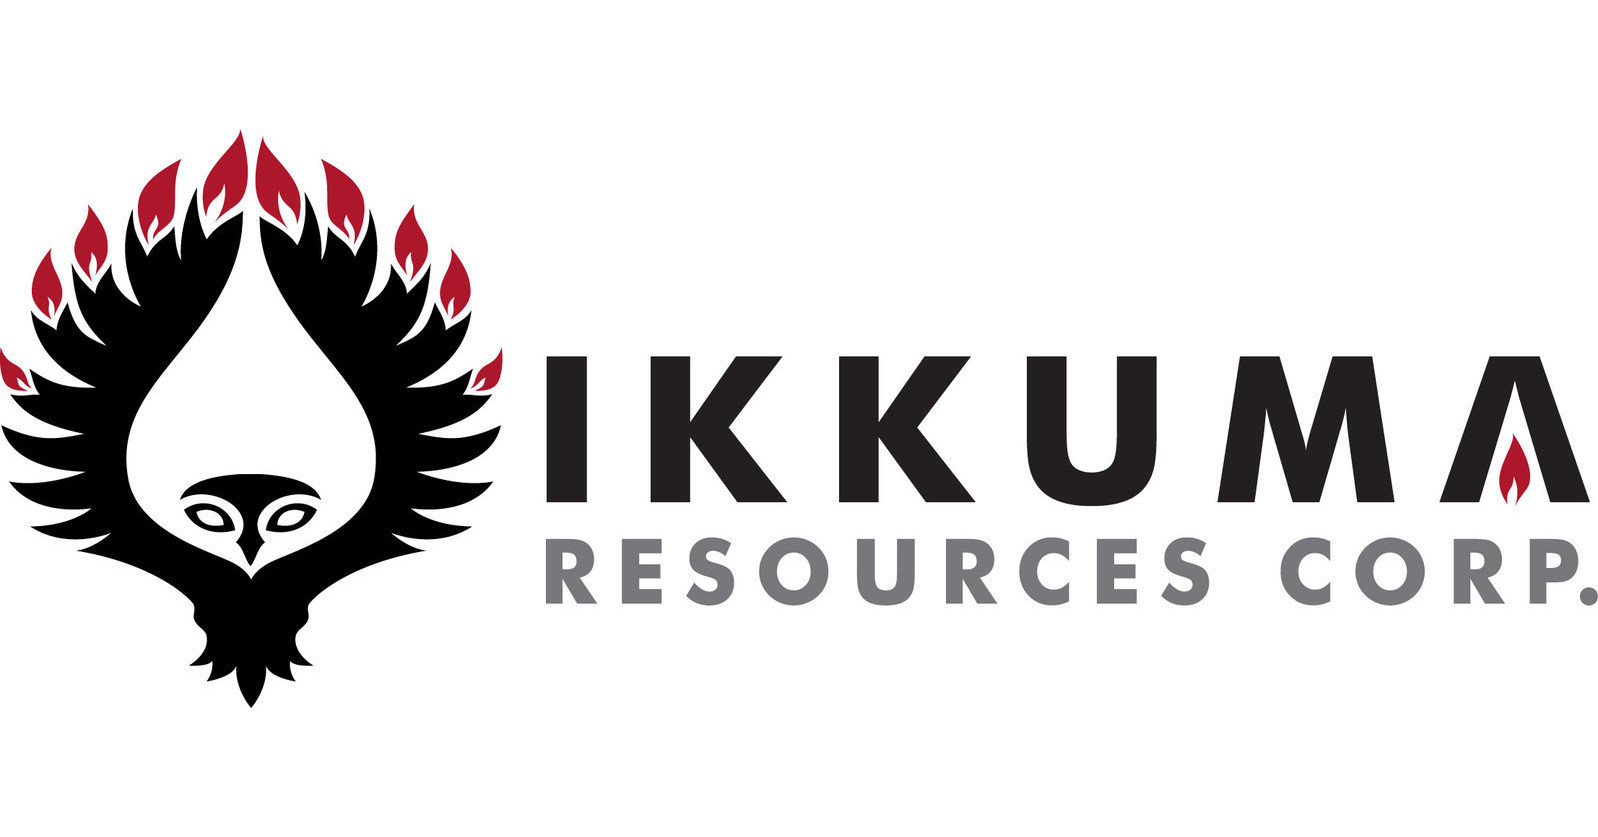 Ikkuma Resources Corp. Announces Third Quarter 2017